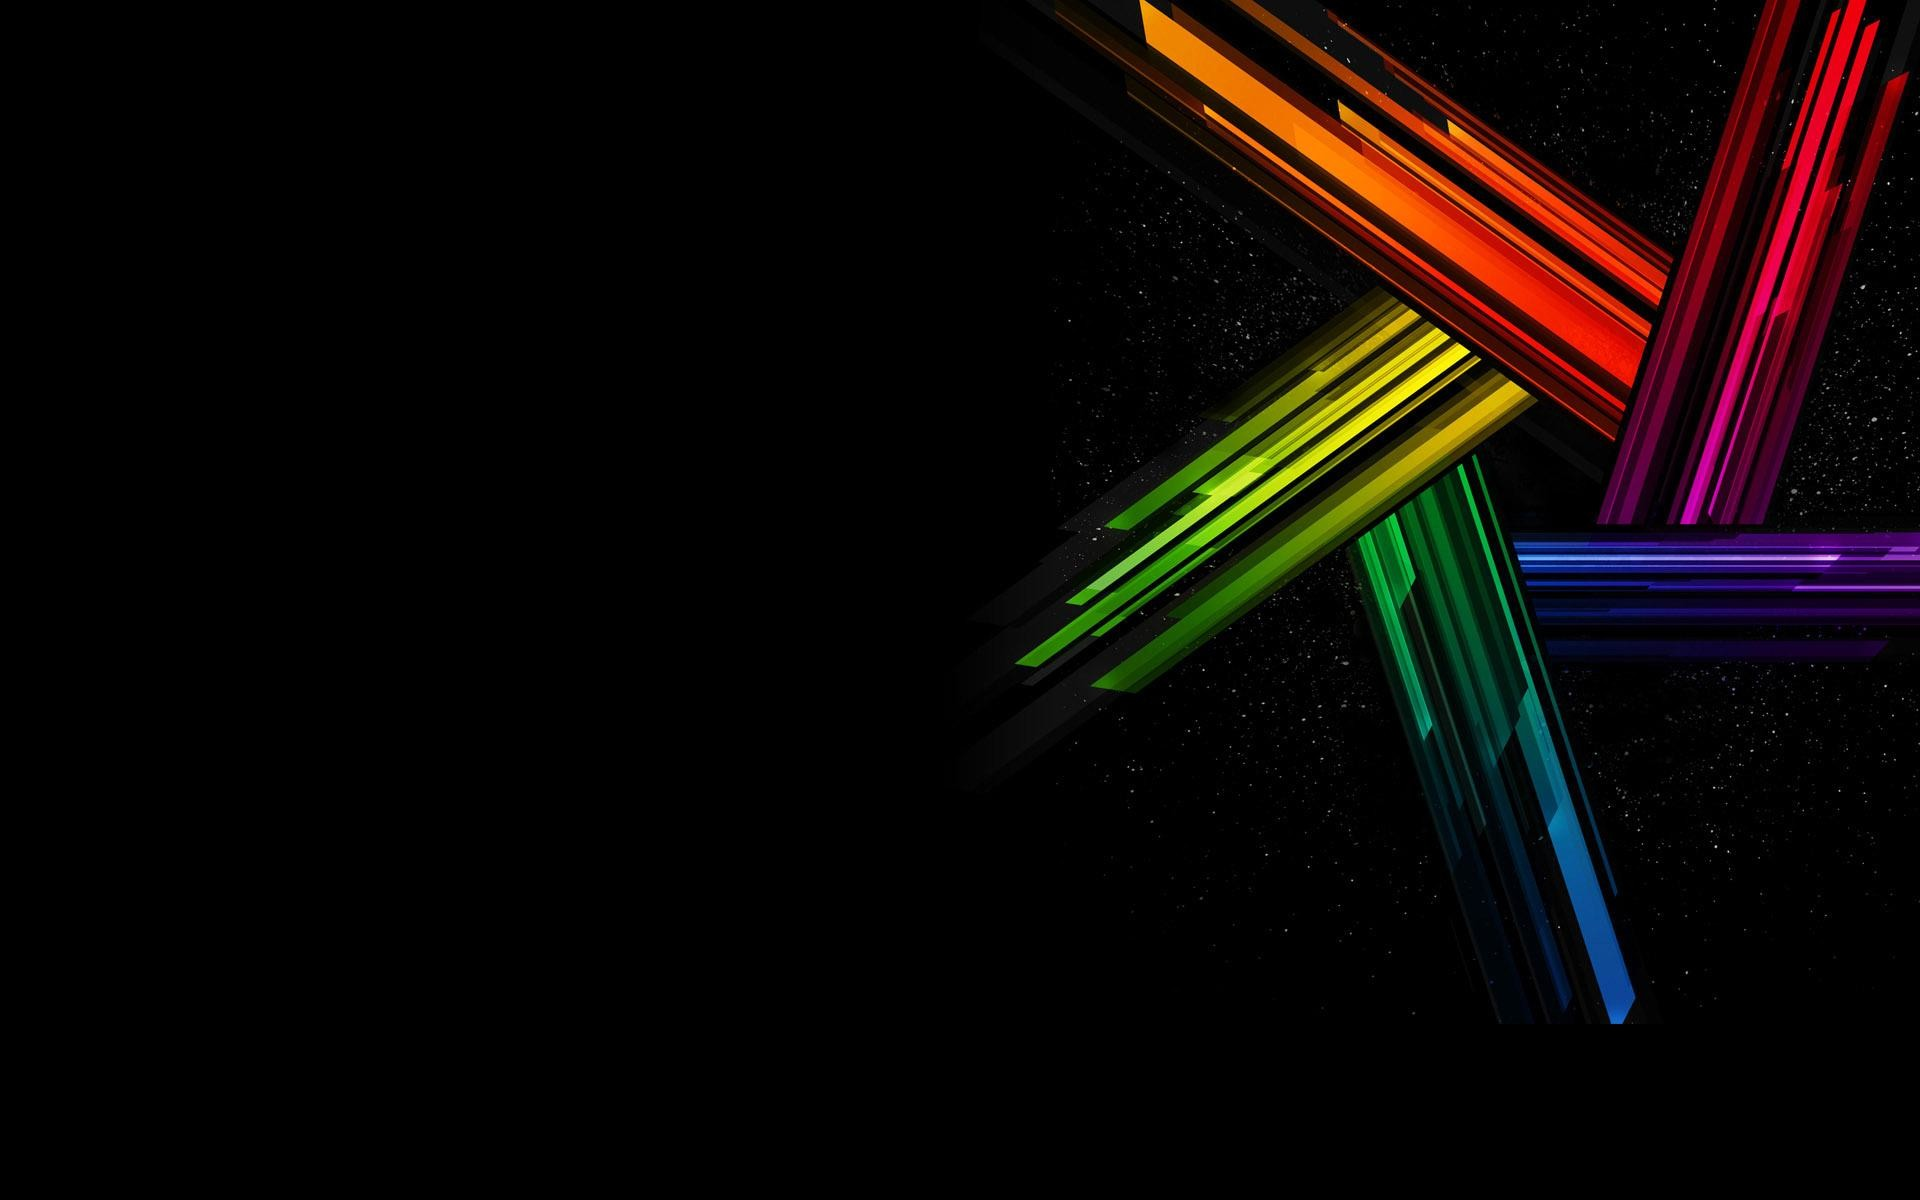 Awesome Abstract Wallpaper 1080p As Wallpaper HD